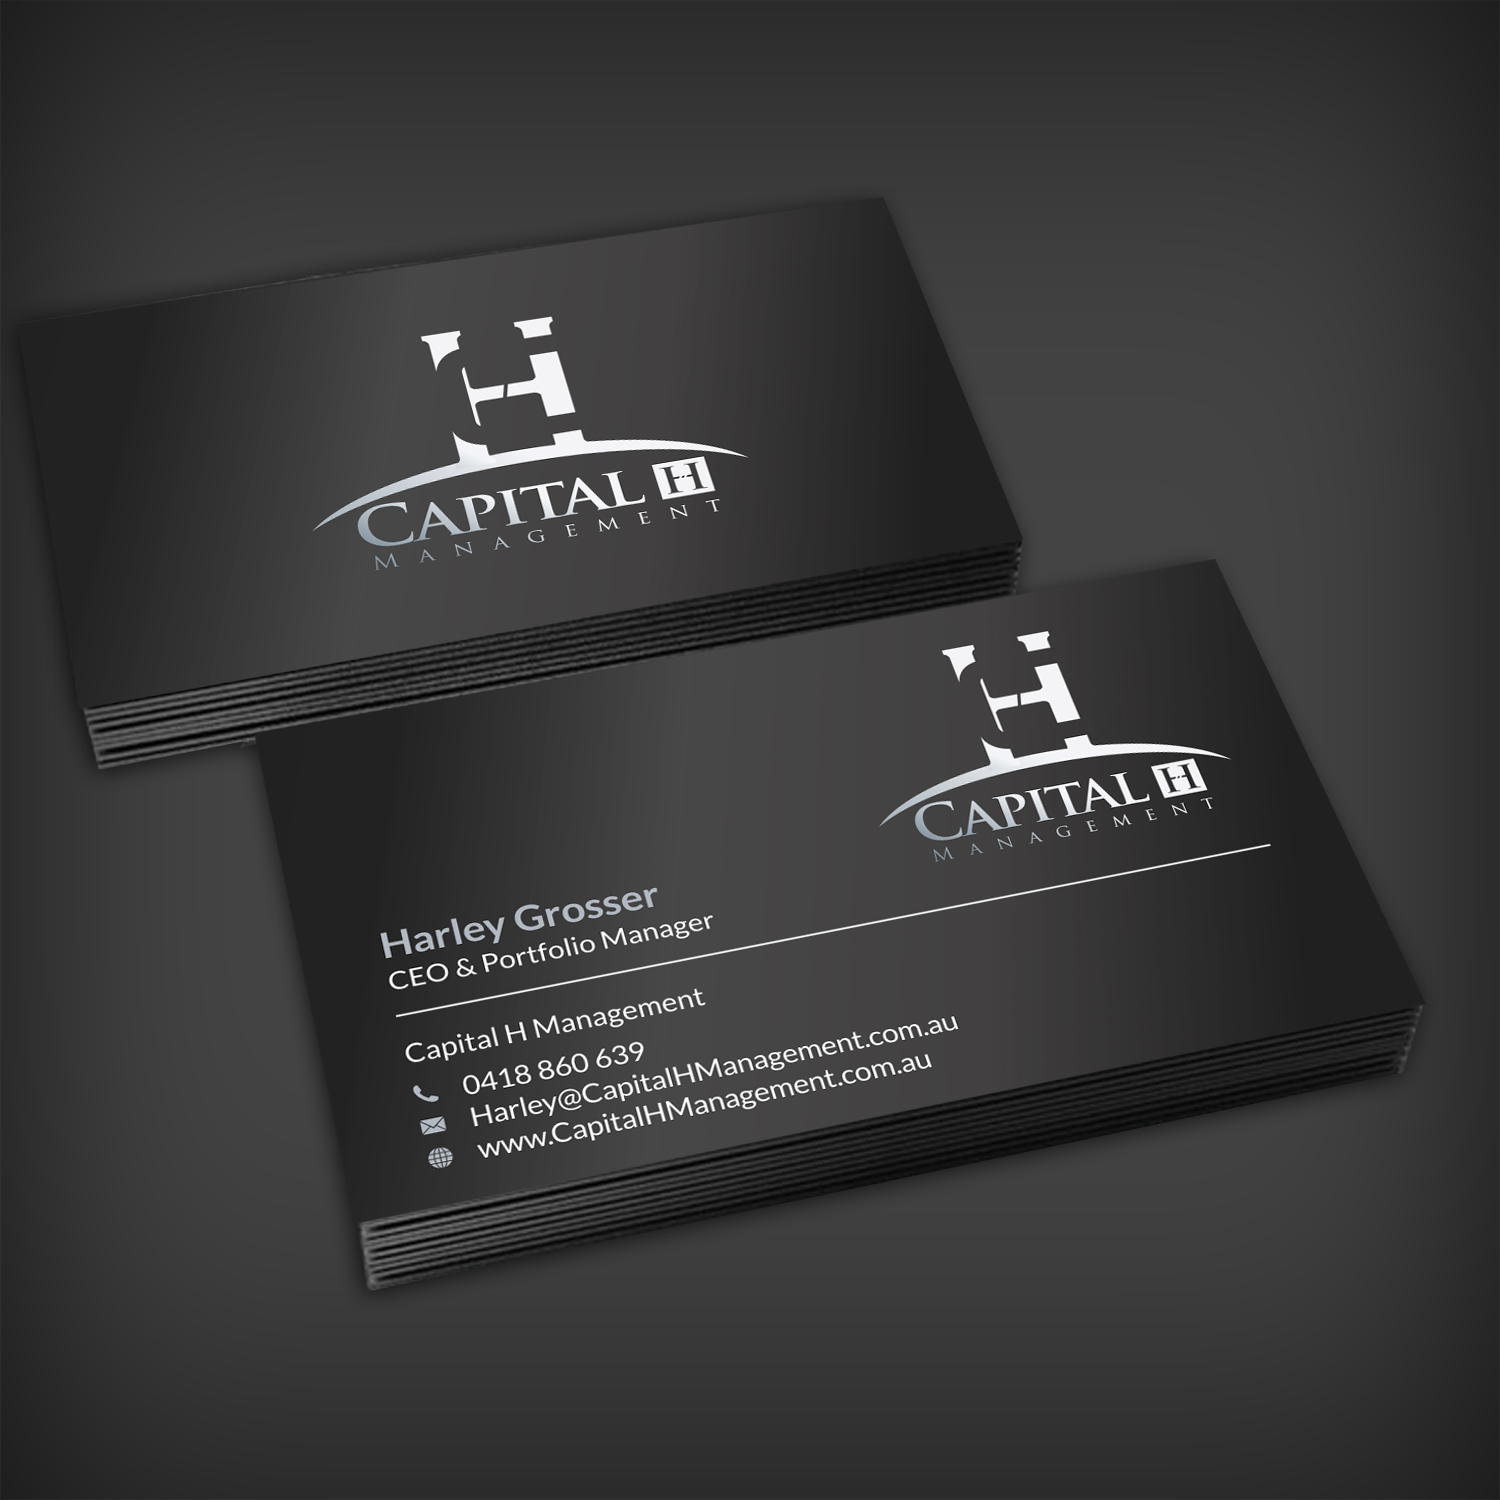 Upmarket, Modern, Finance Business Card Design for a Company by ...